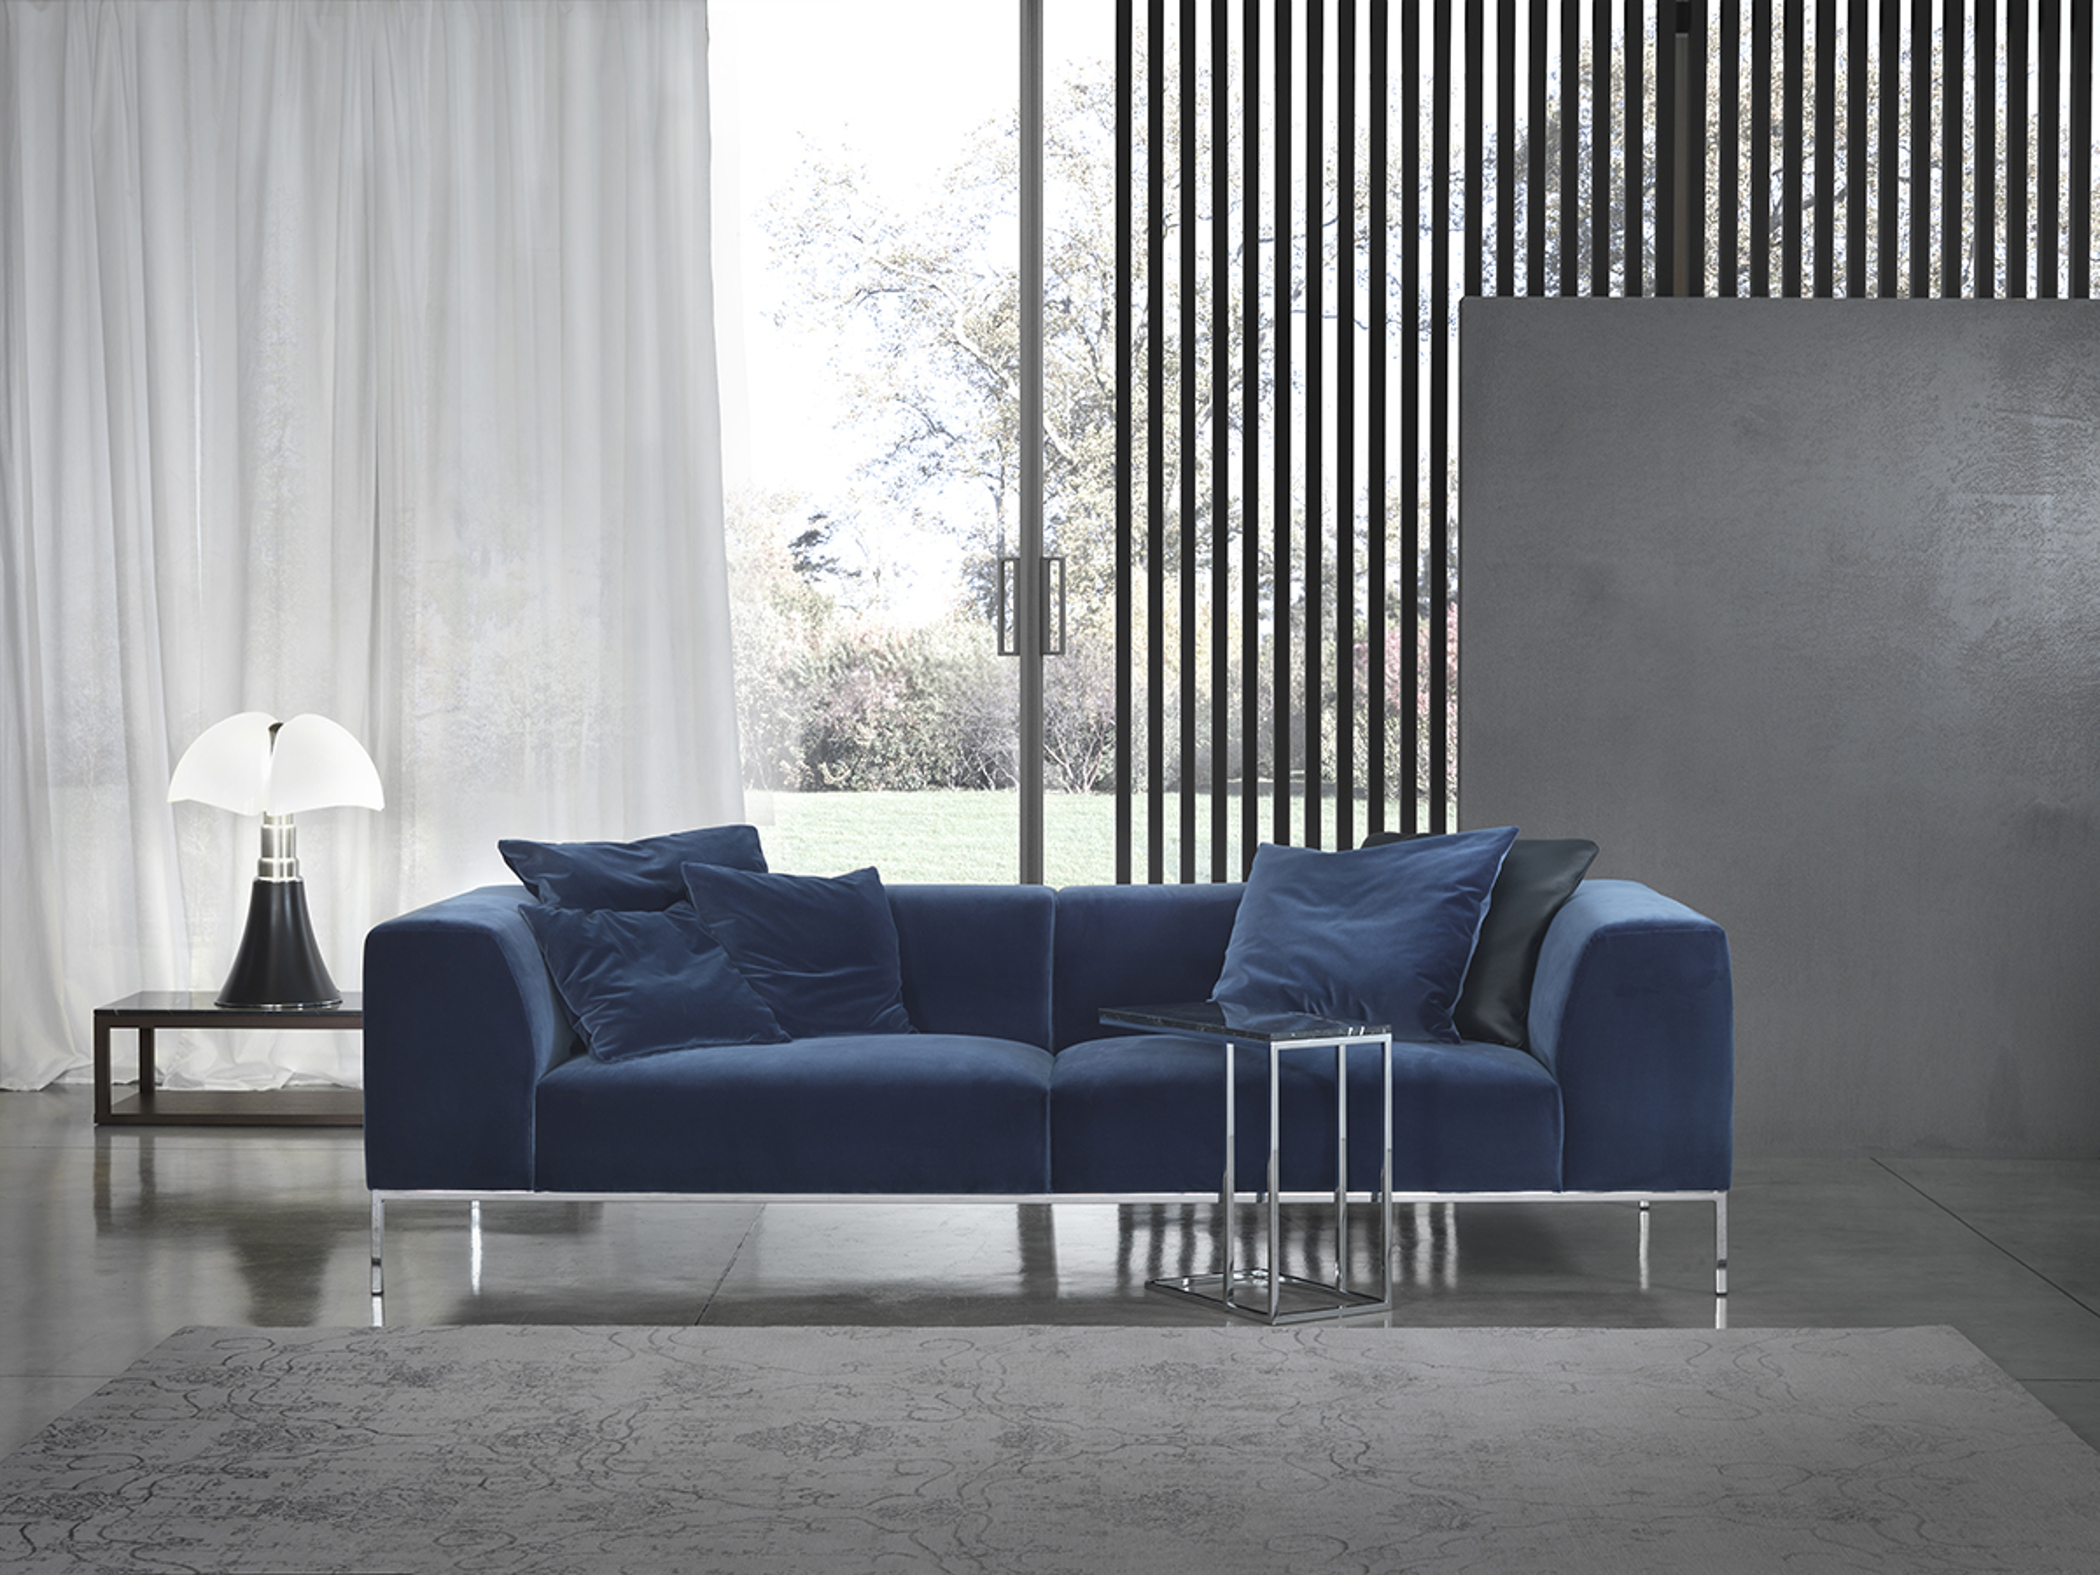 Design modern 3 seaters sofa in velvet New york